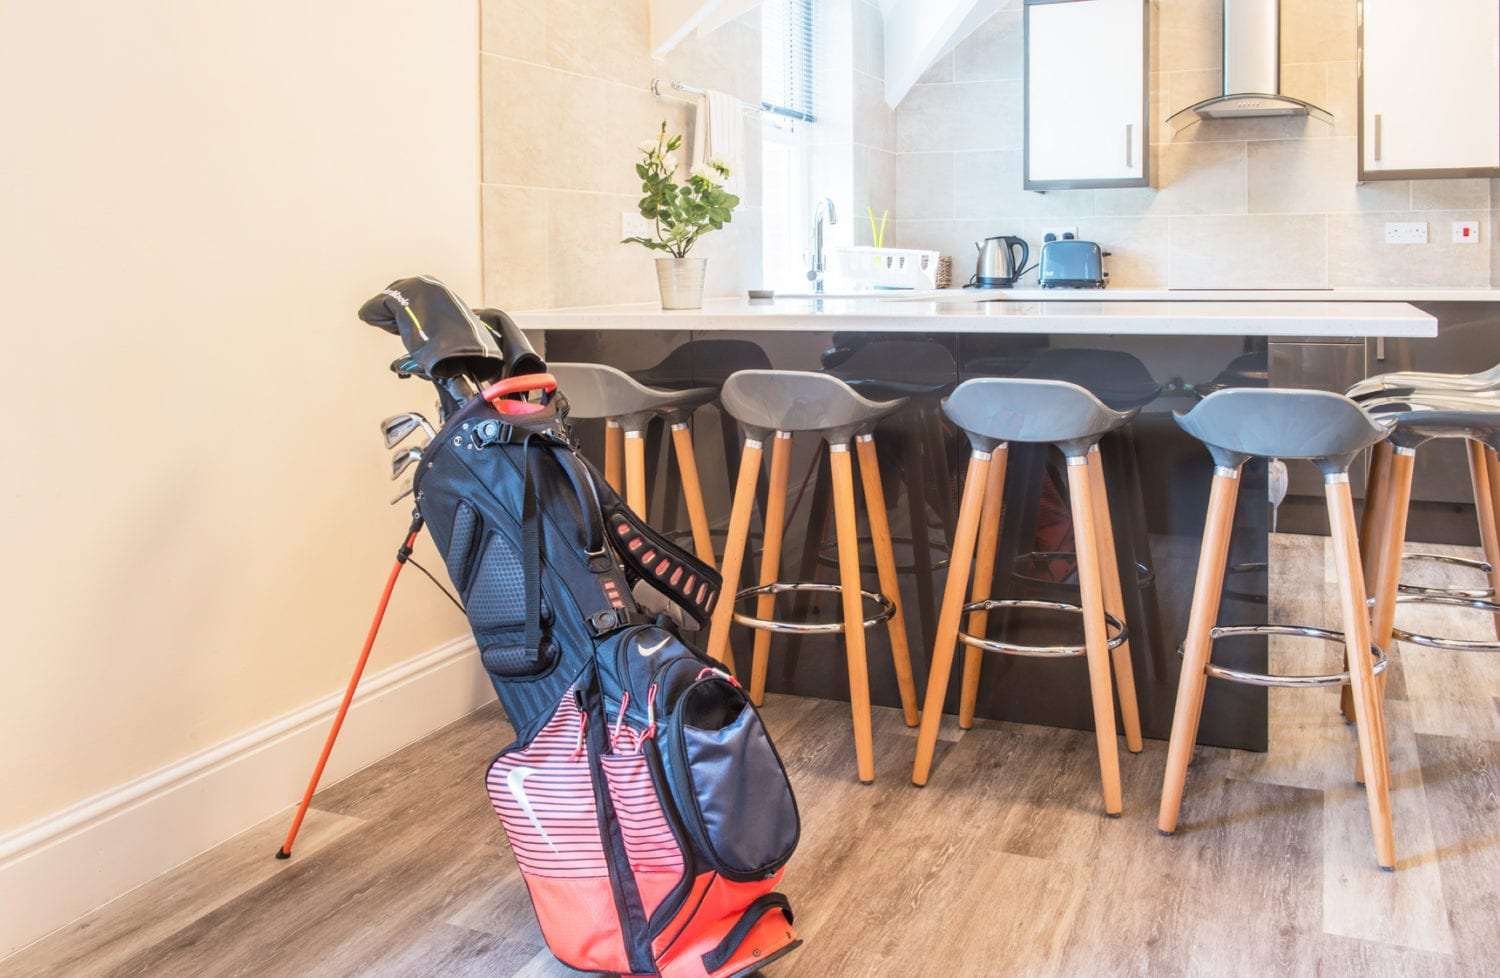 Accommodation at the golf resort in South Wales - A bag of golf clubs placed in a communal kitchen and living room area